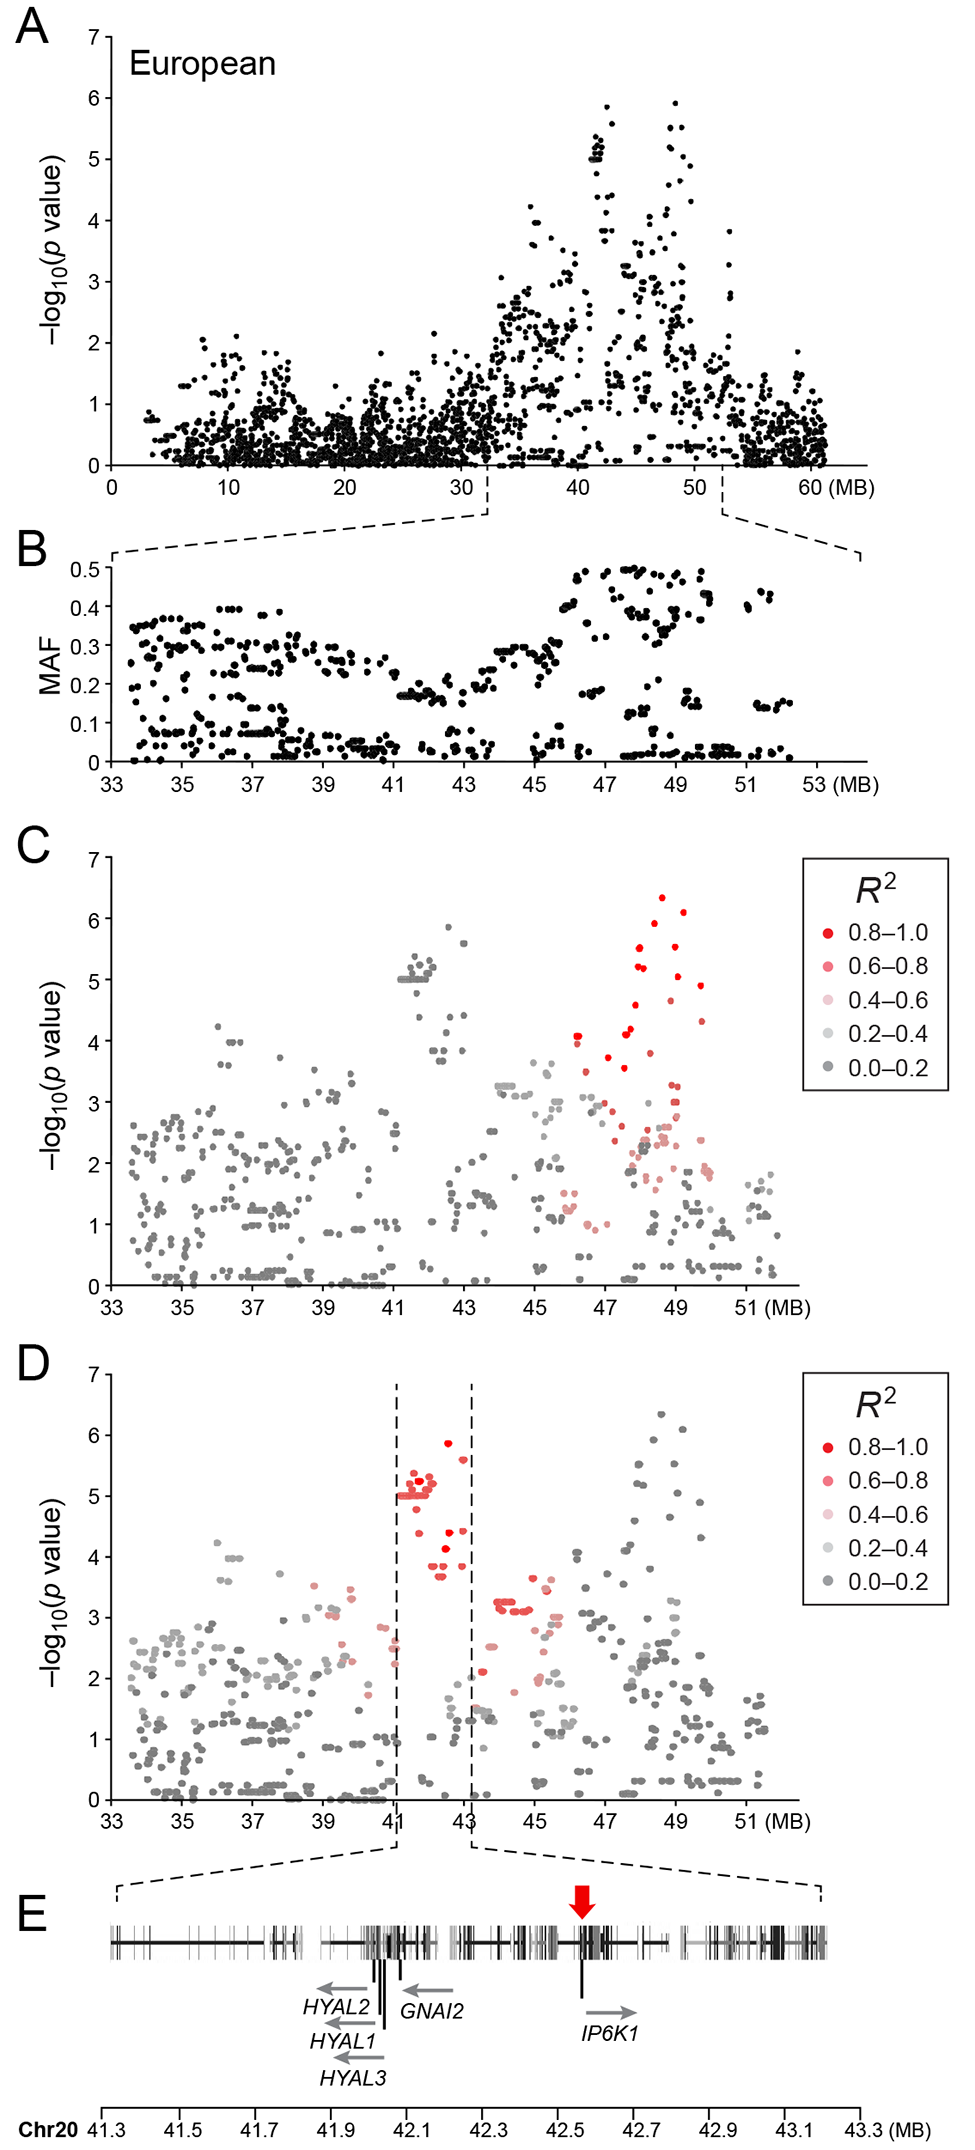 a) Close up view of the most associated region from the European GWAS analysis. b) Minor allele frequency of the associated region. c) Further close up of the associated region showing the LD structure of the SNPs in the 48 MB locus relative to the most associated SNP in the locus. d) Further close up of the associated peak showing the LD structure of the SNPs in the 42 MB locus relative to the most associated SNP in the locus. e) Close up view of the genes located on the associated haplotype in the 42MB region.